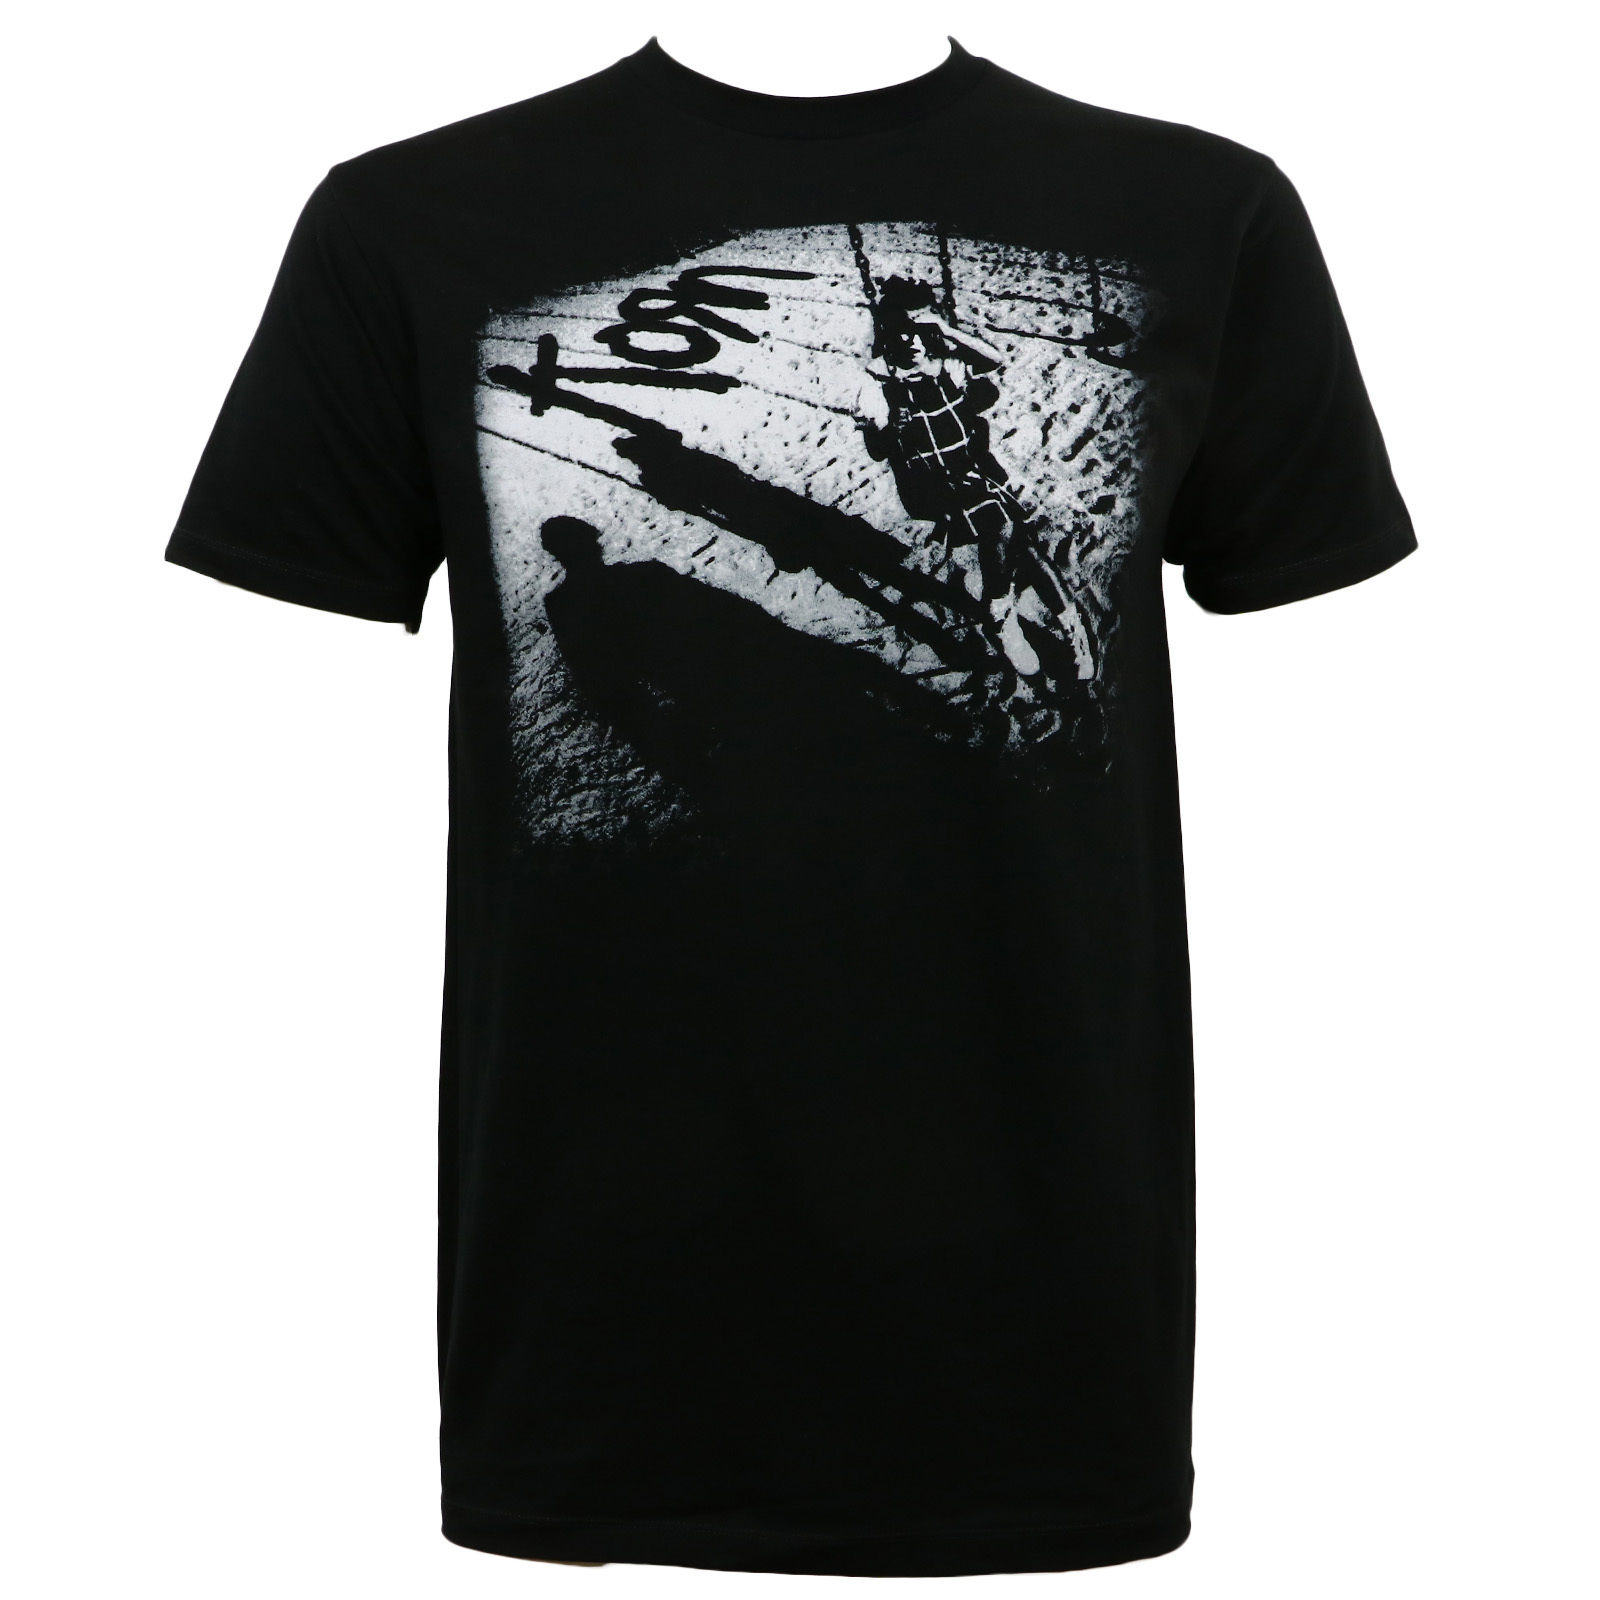 Men's Clothing Objective Okoufen Authentic Korn Band Sandbox Self Titled Album Cover Slim Fit T-shirt S-2xl New Mens T-shirt Good For Energy And The Spleen